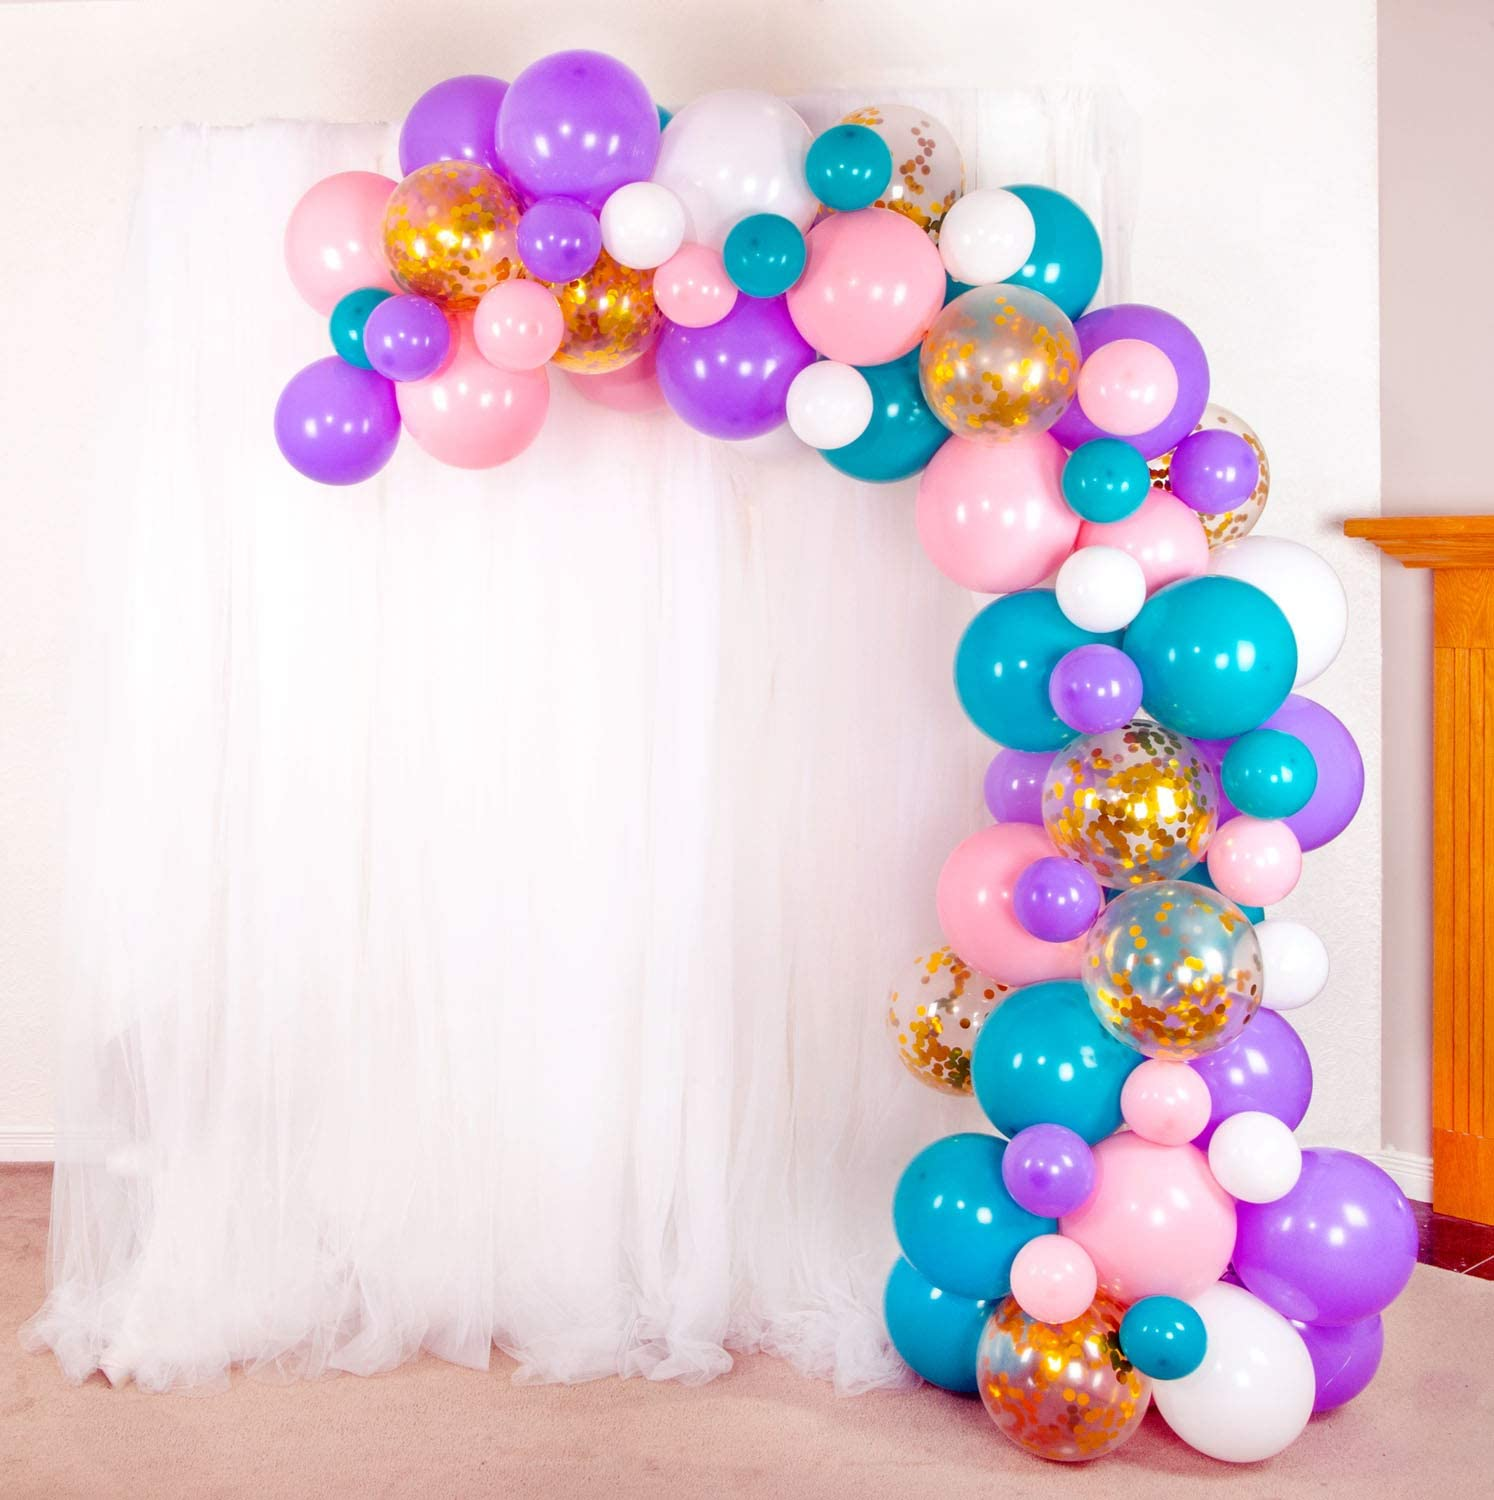 Shimmer and Confetti Premium 74 Pack Mermaid Unicorn Balloon Arch and Garland Kit with 74 Matte Pink, Purple, White, Aqua Balloons, 10 Gold Confetti Balloons, Tape, Fishing Line, Glue Dots